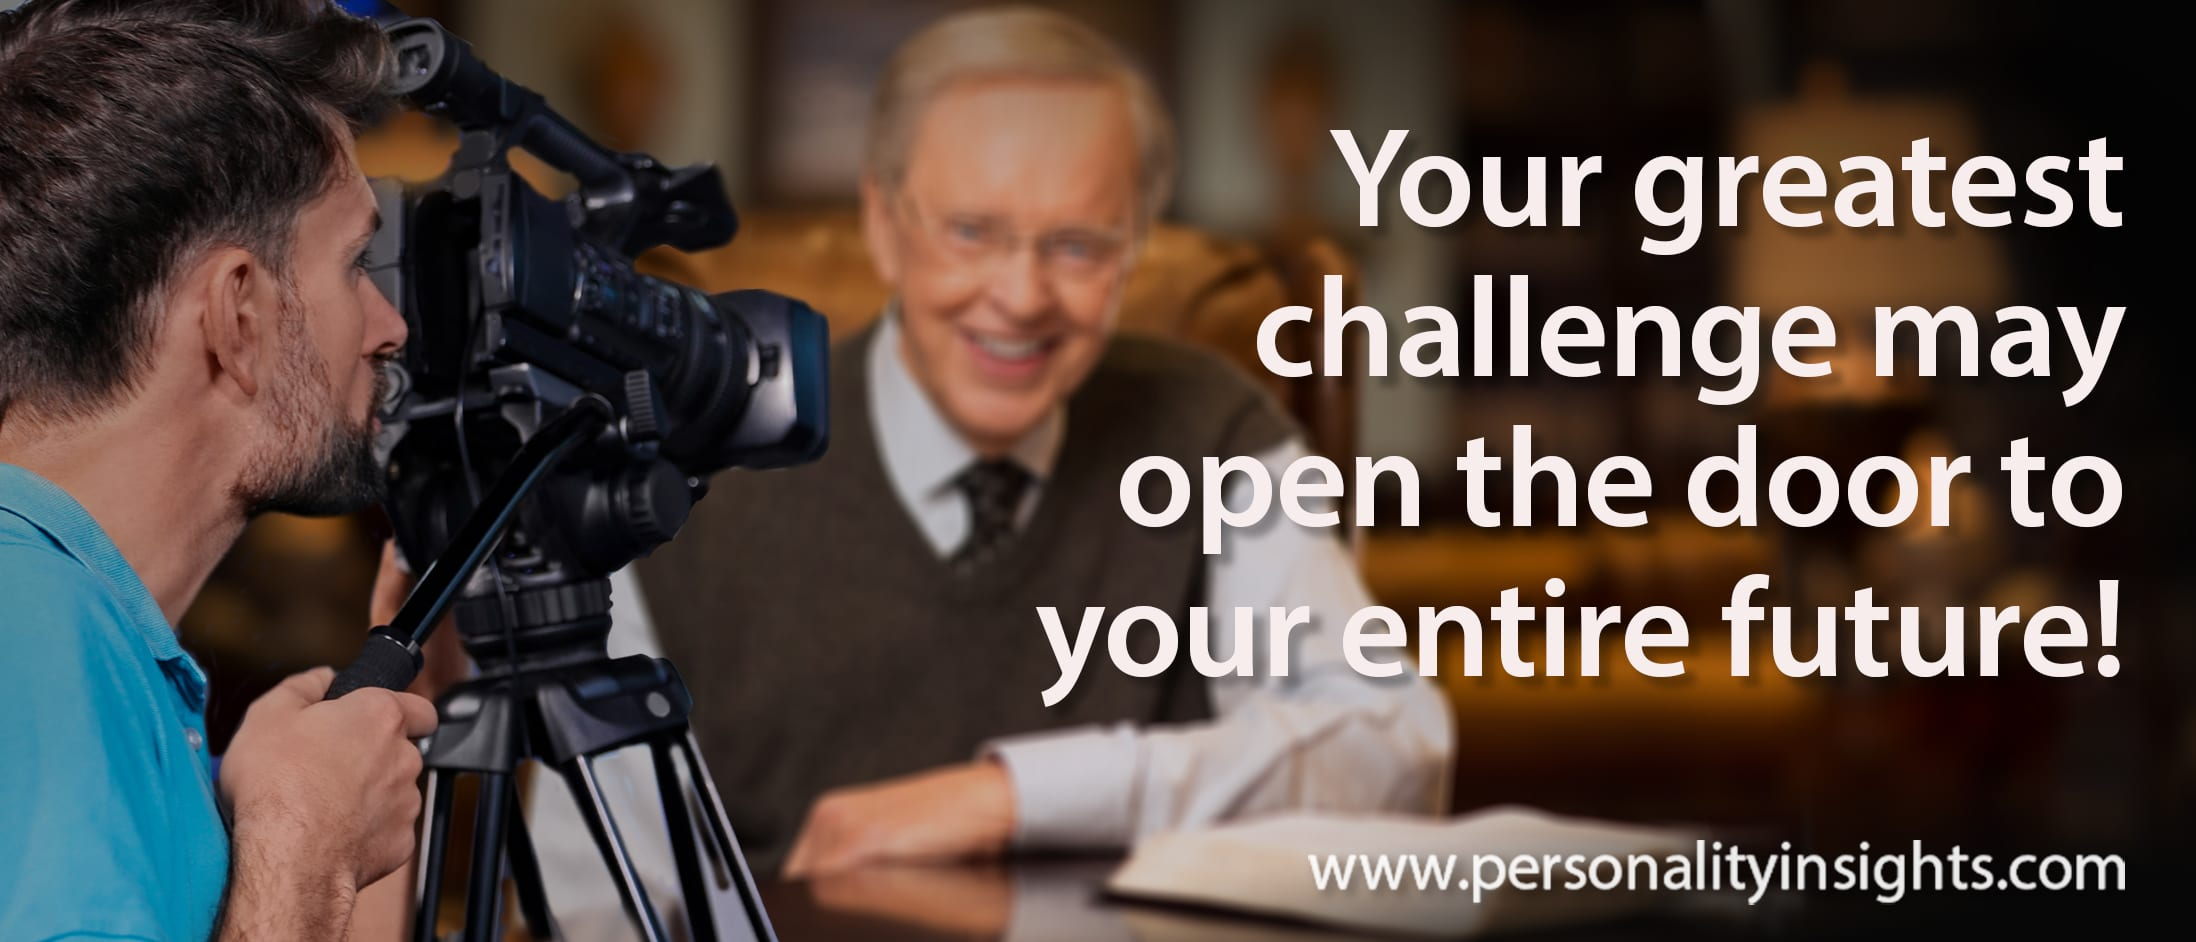 Tip: Your greatest challenge may open the door to your entire future!